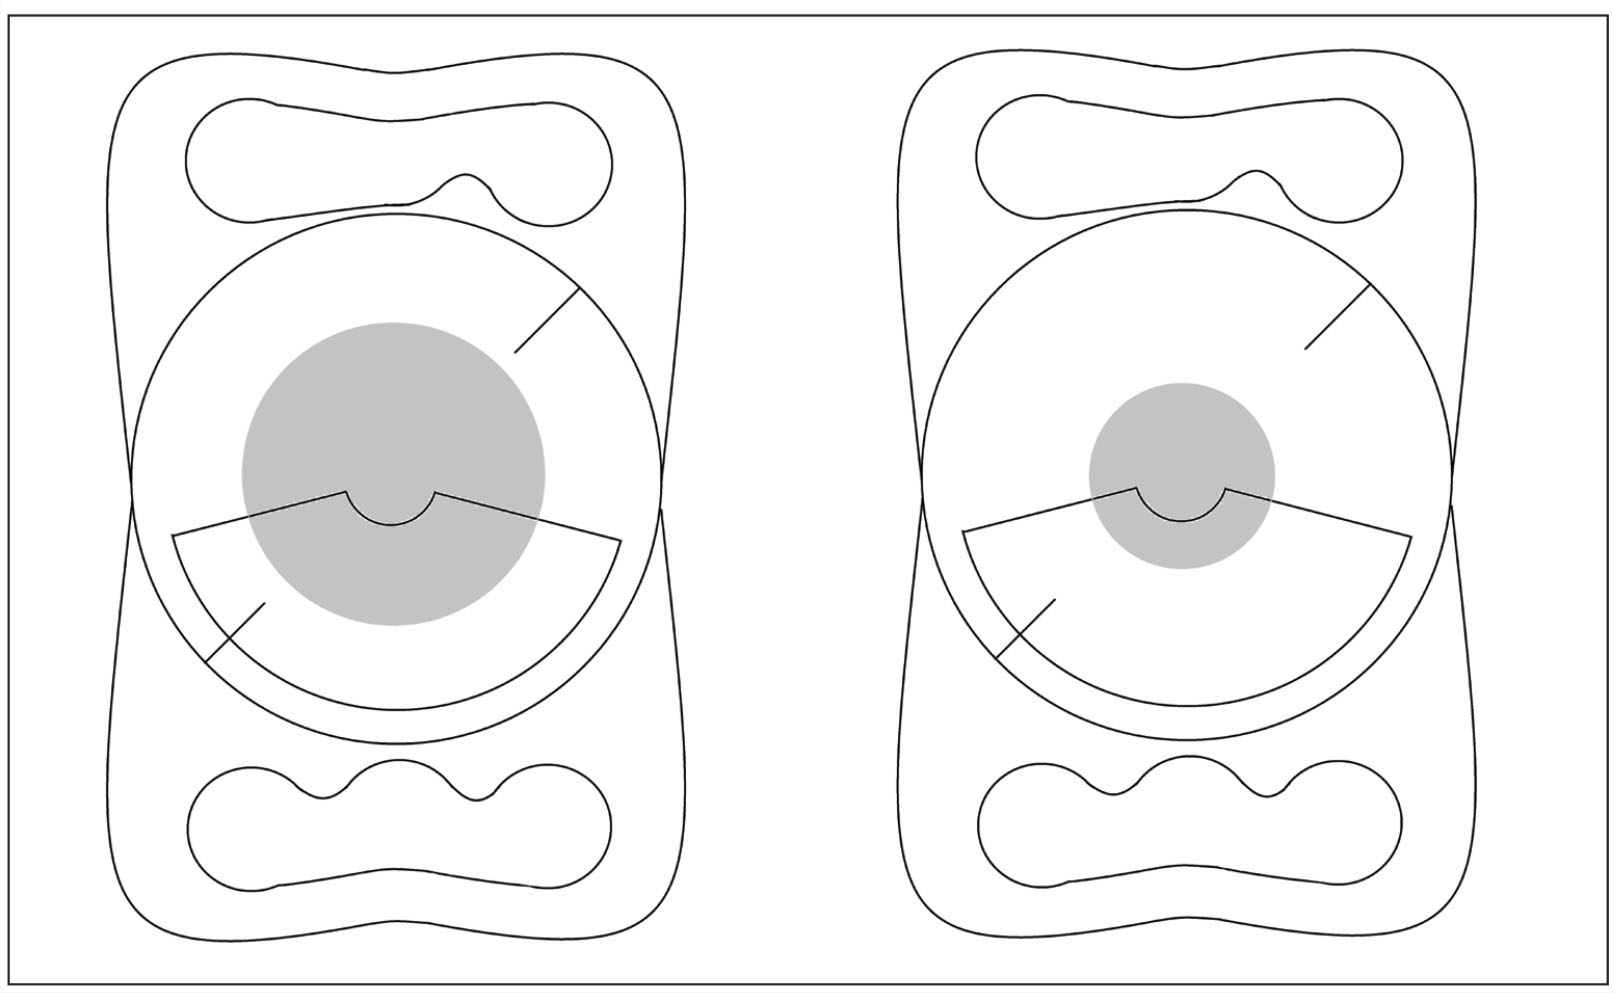 "The relationship between the pupil size and Lentis Mplus toric LU-313 30TY intraocular lens (Oculentis GmbH, Berlin, Germany). The gray disc indicates the pupil area. When the pupil is small, the ""pupil-exposed"" optic zone of this intraocular lens model, especially the near segment, will eventually be small."